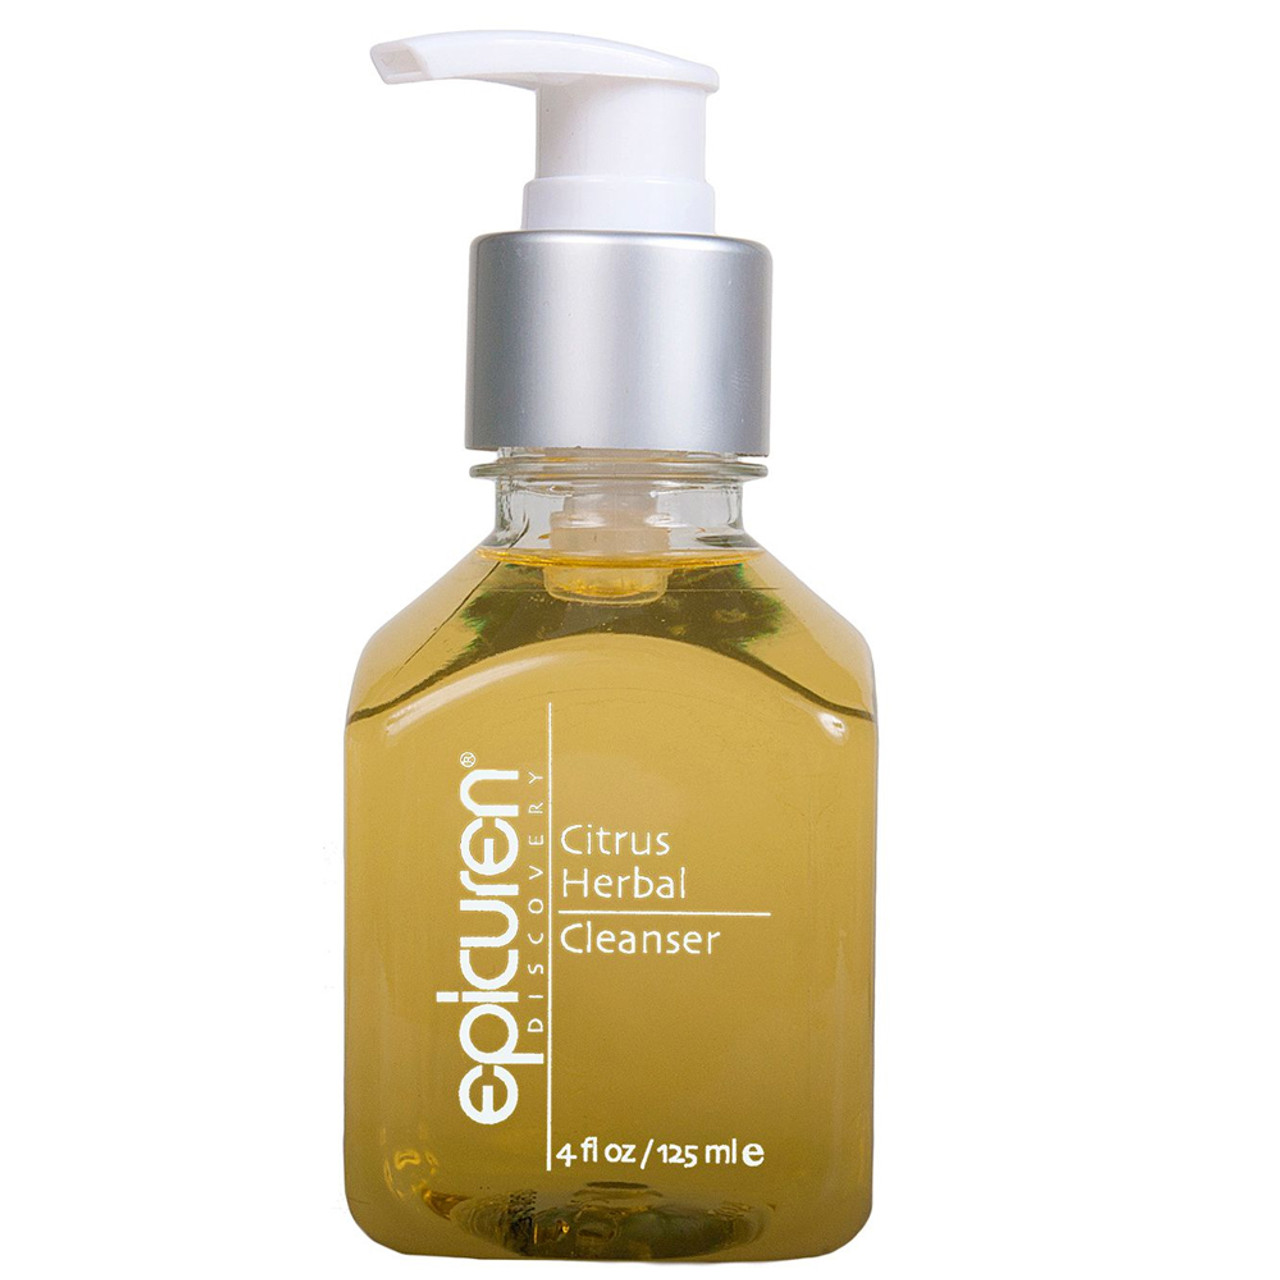 epicuren Discovery Citrus Herbal Cleanser 4 oz